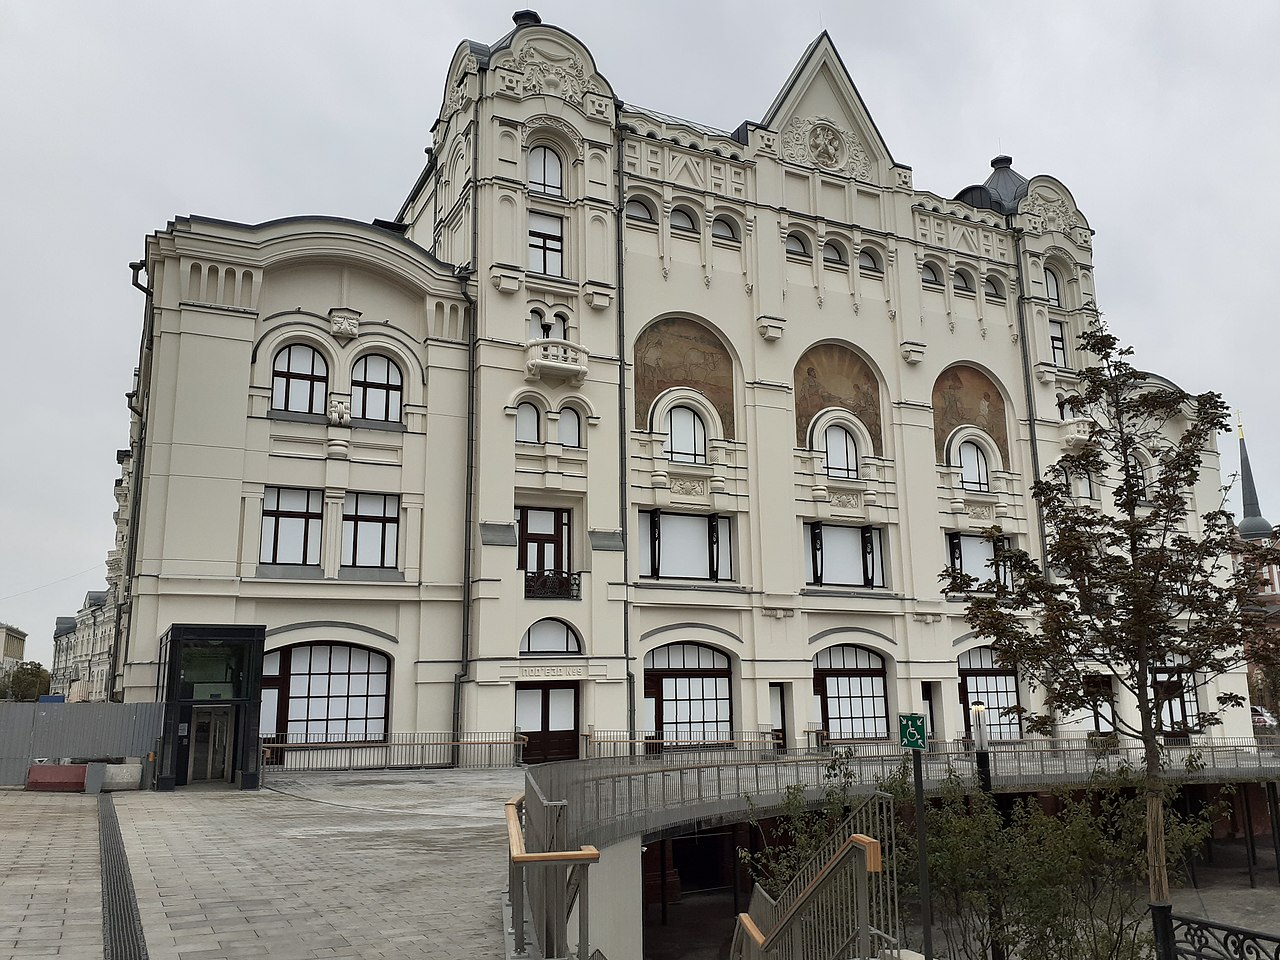 Facade of Polytechnic Museum, created in 1872, restaured in 2019, Moscow, Russia